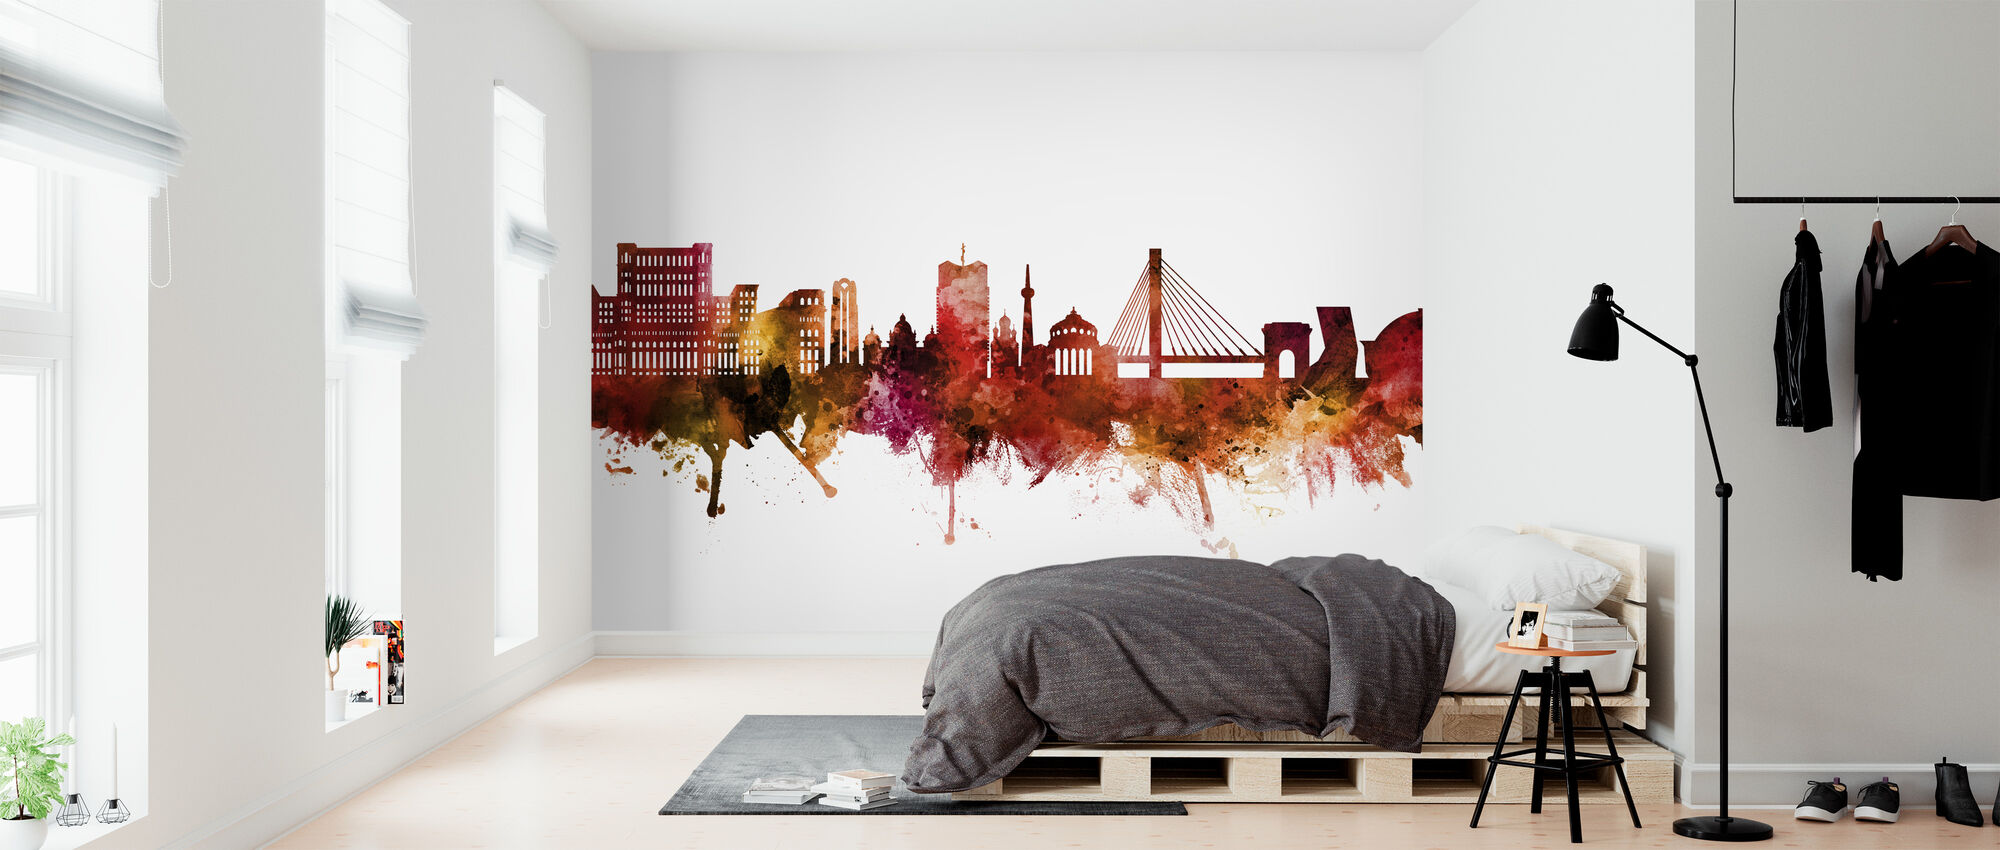 Bucharest Romania Skyline - Wallpaper - Bedroom